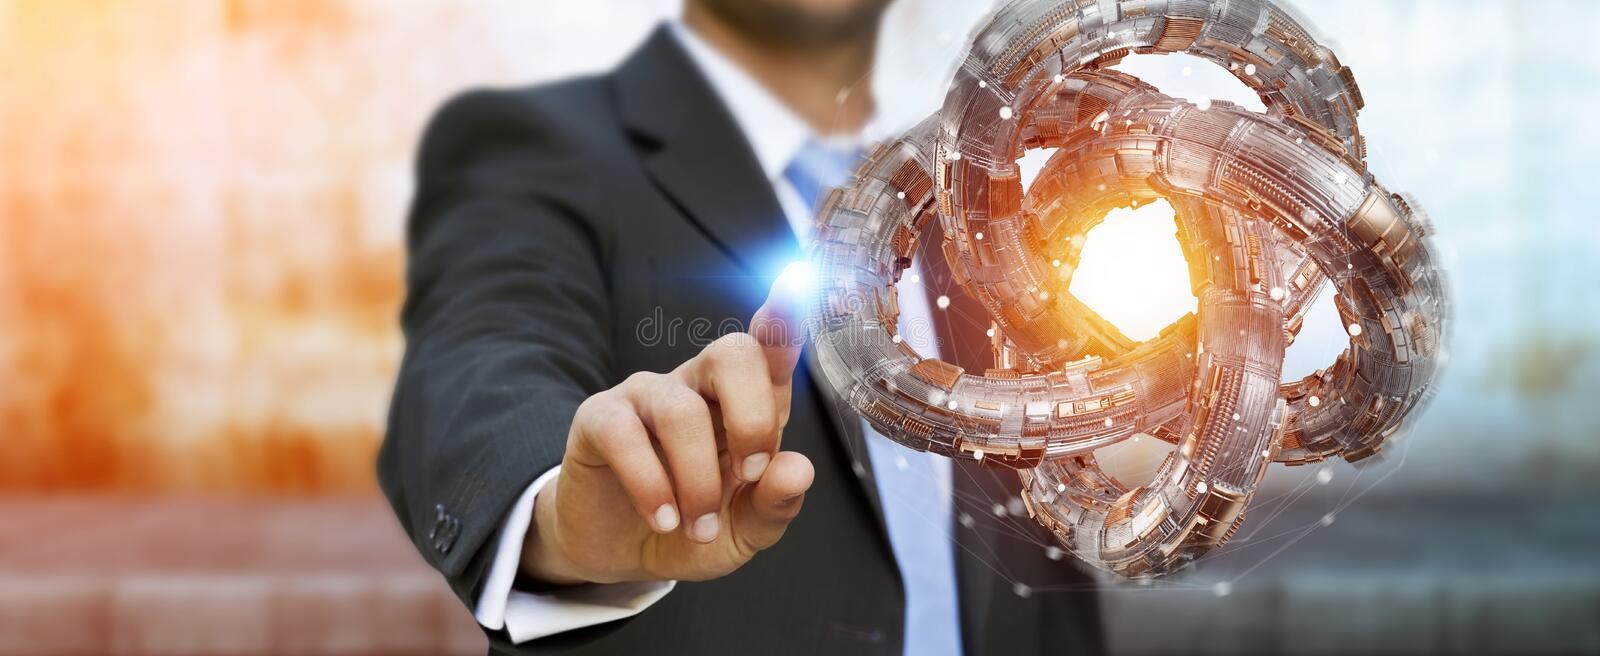 Businessman using futuristic torus textured object 3D rendering stock illustration